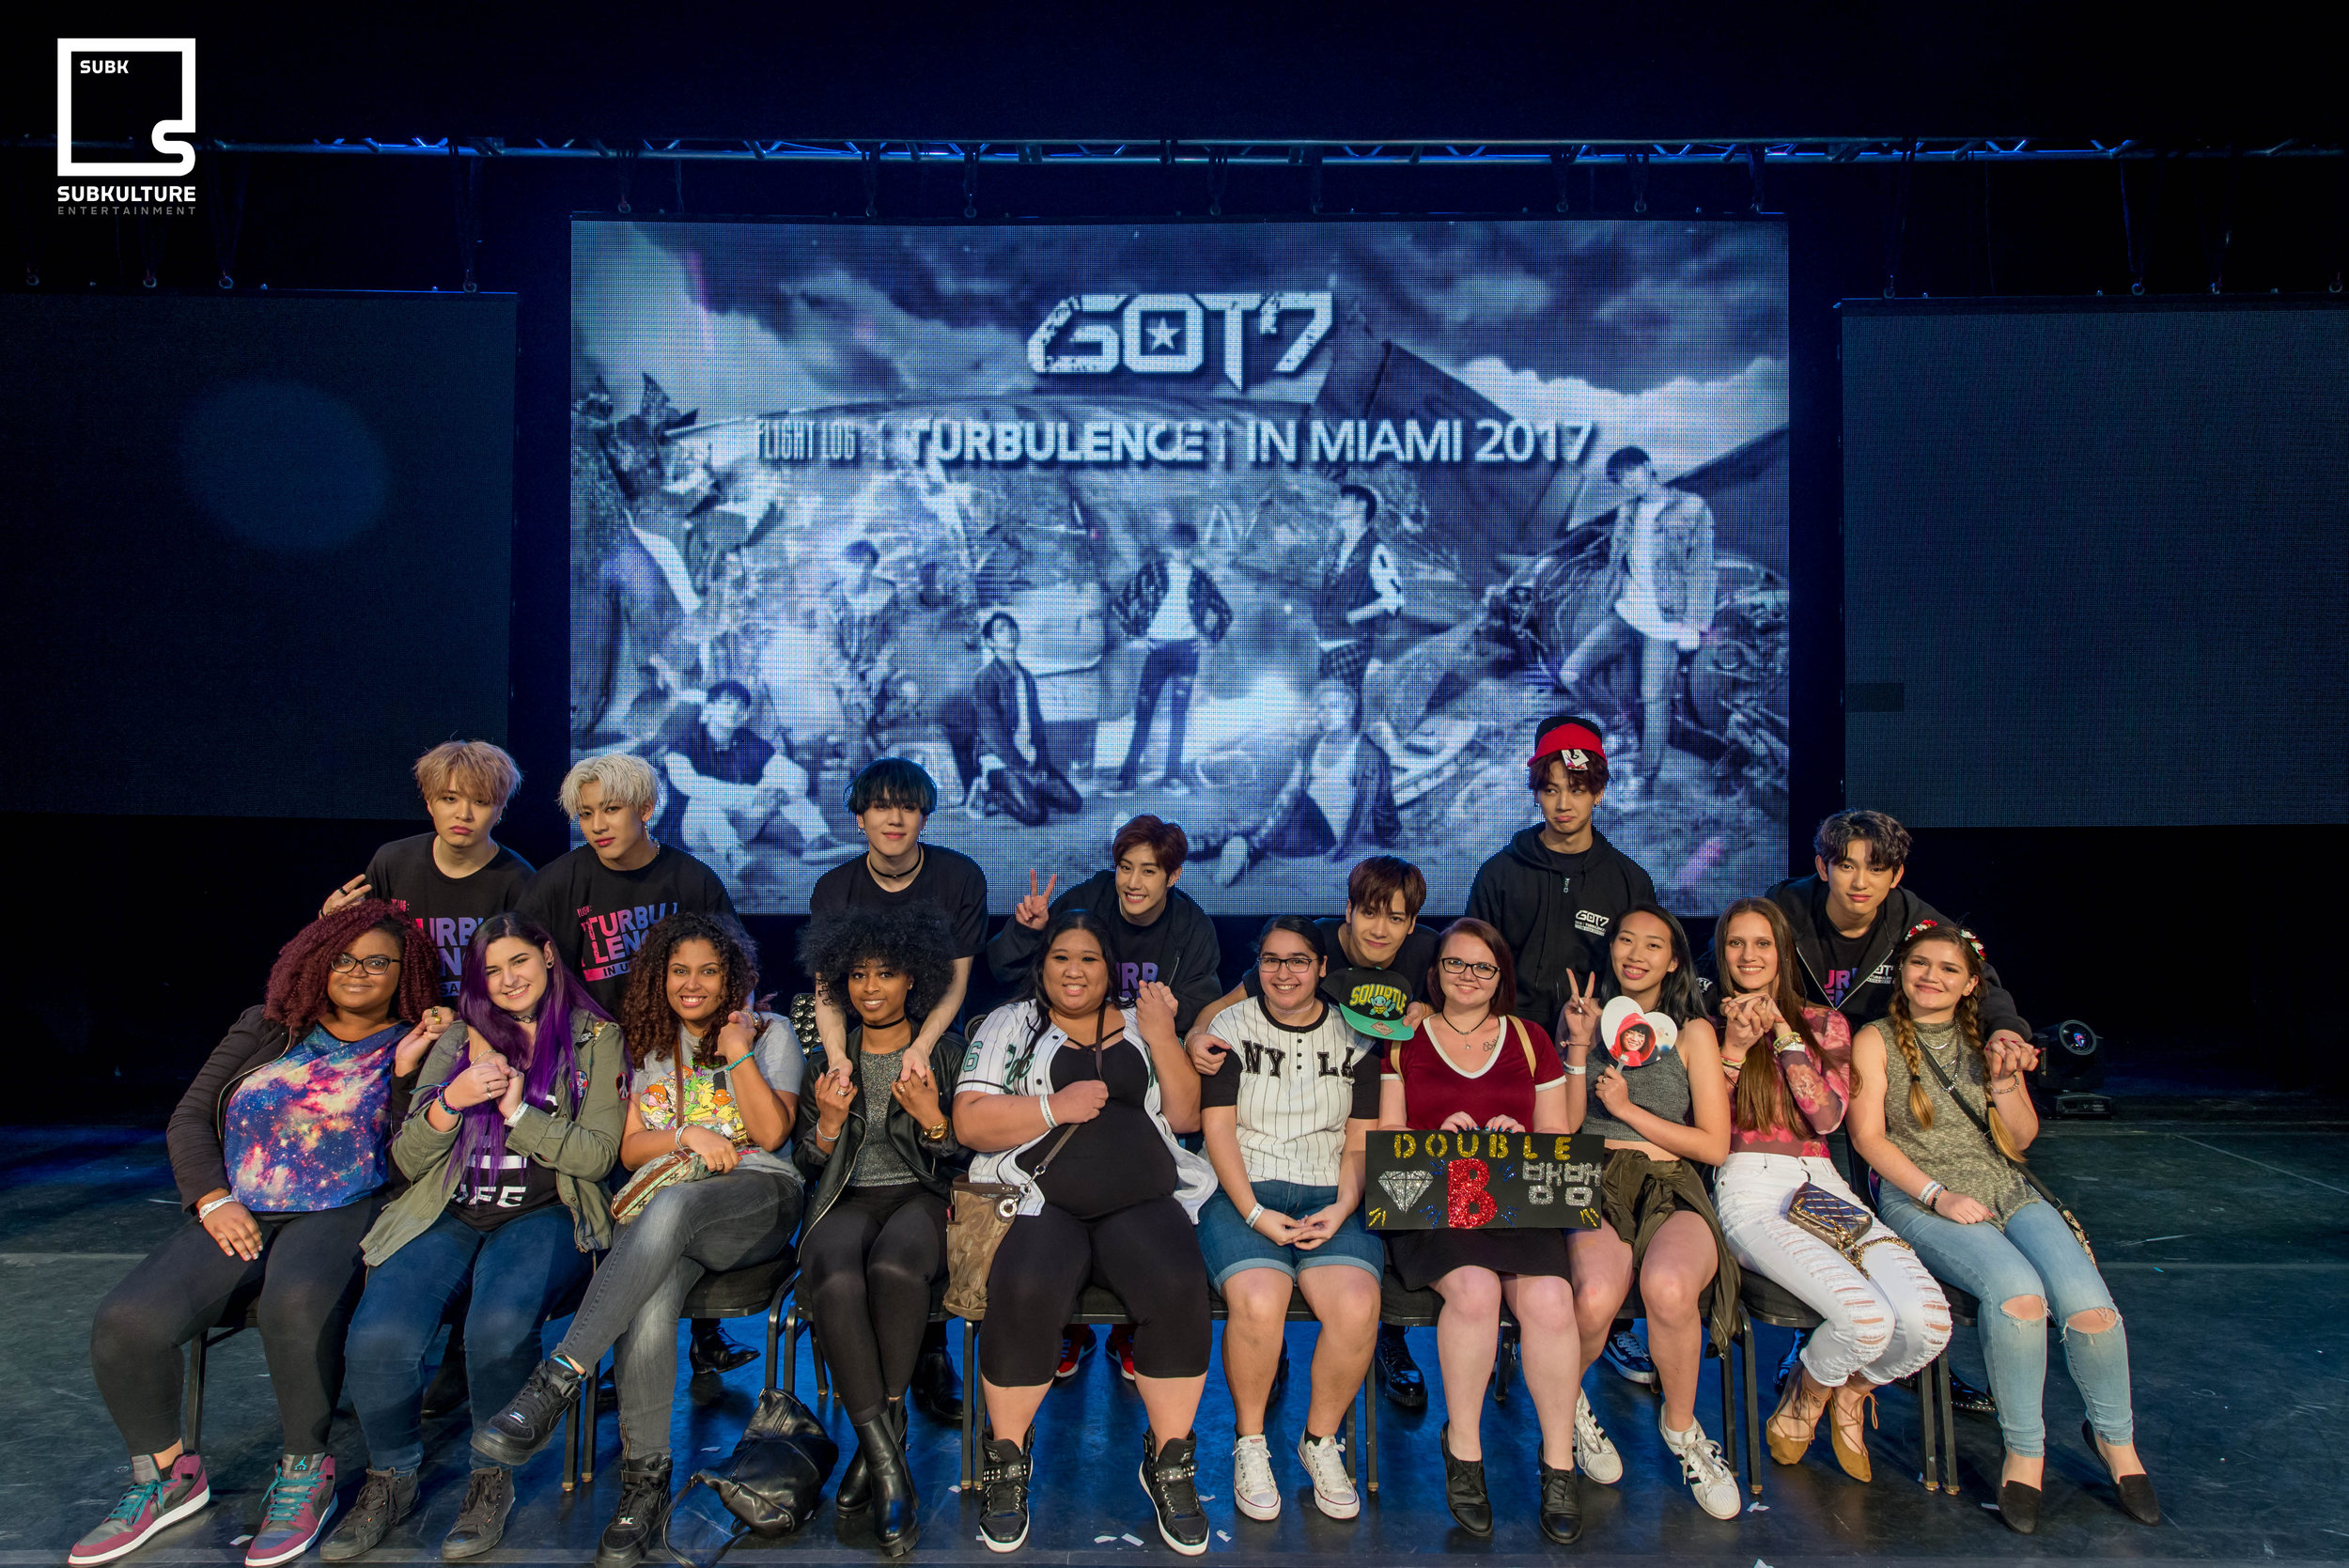 GOT7 Fan Photos Miami -1159 copy.jpg